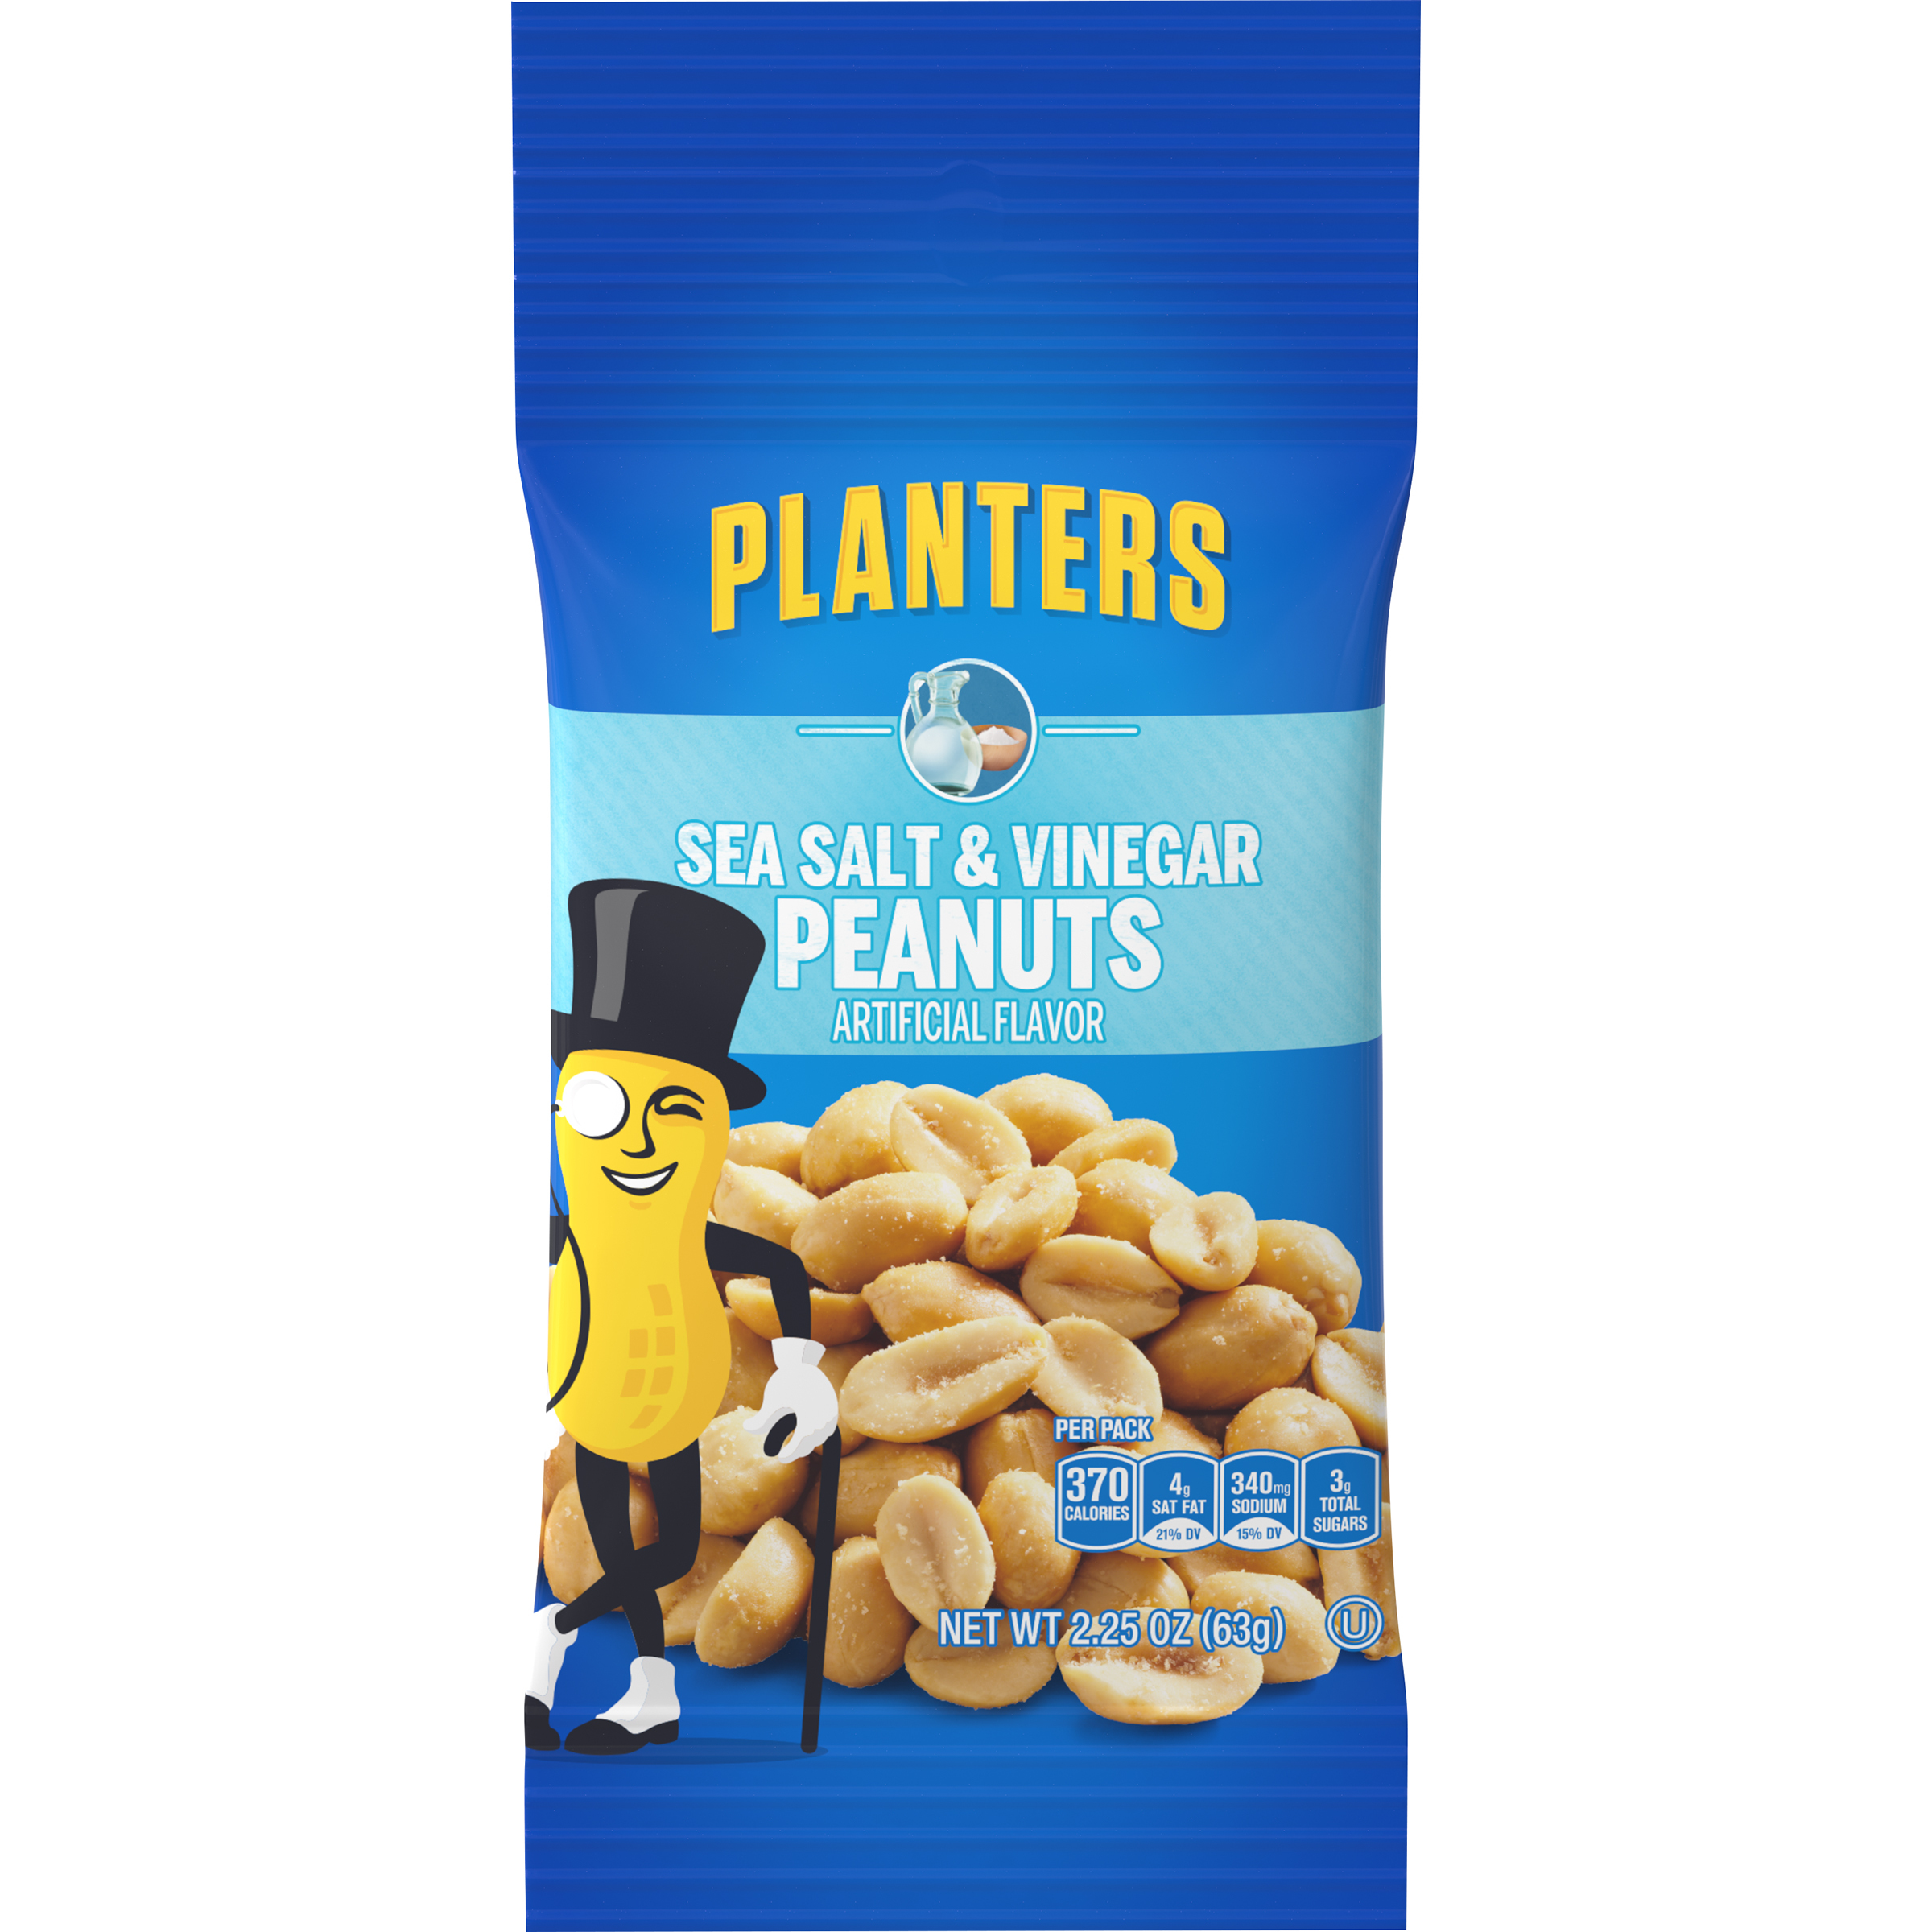 Planters Trail Mix Snack Nuts - Nuts & Chocolate, 6 oz. image